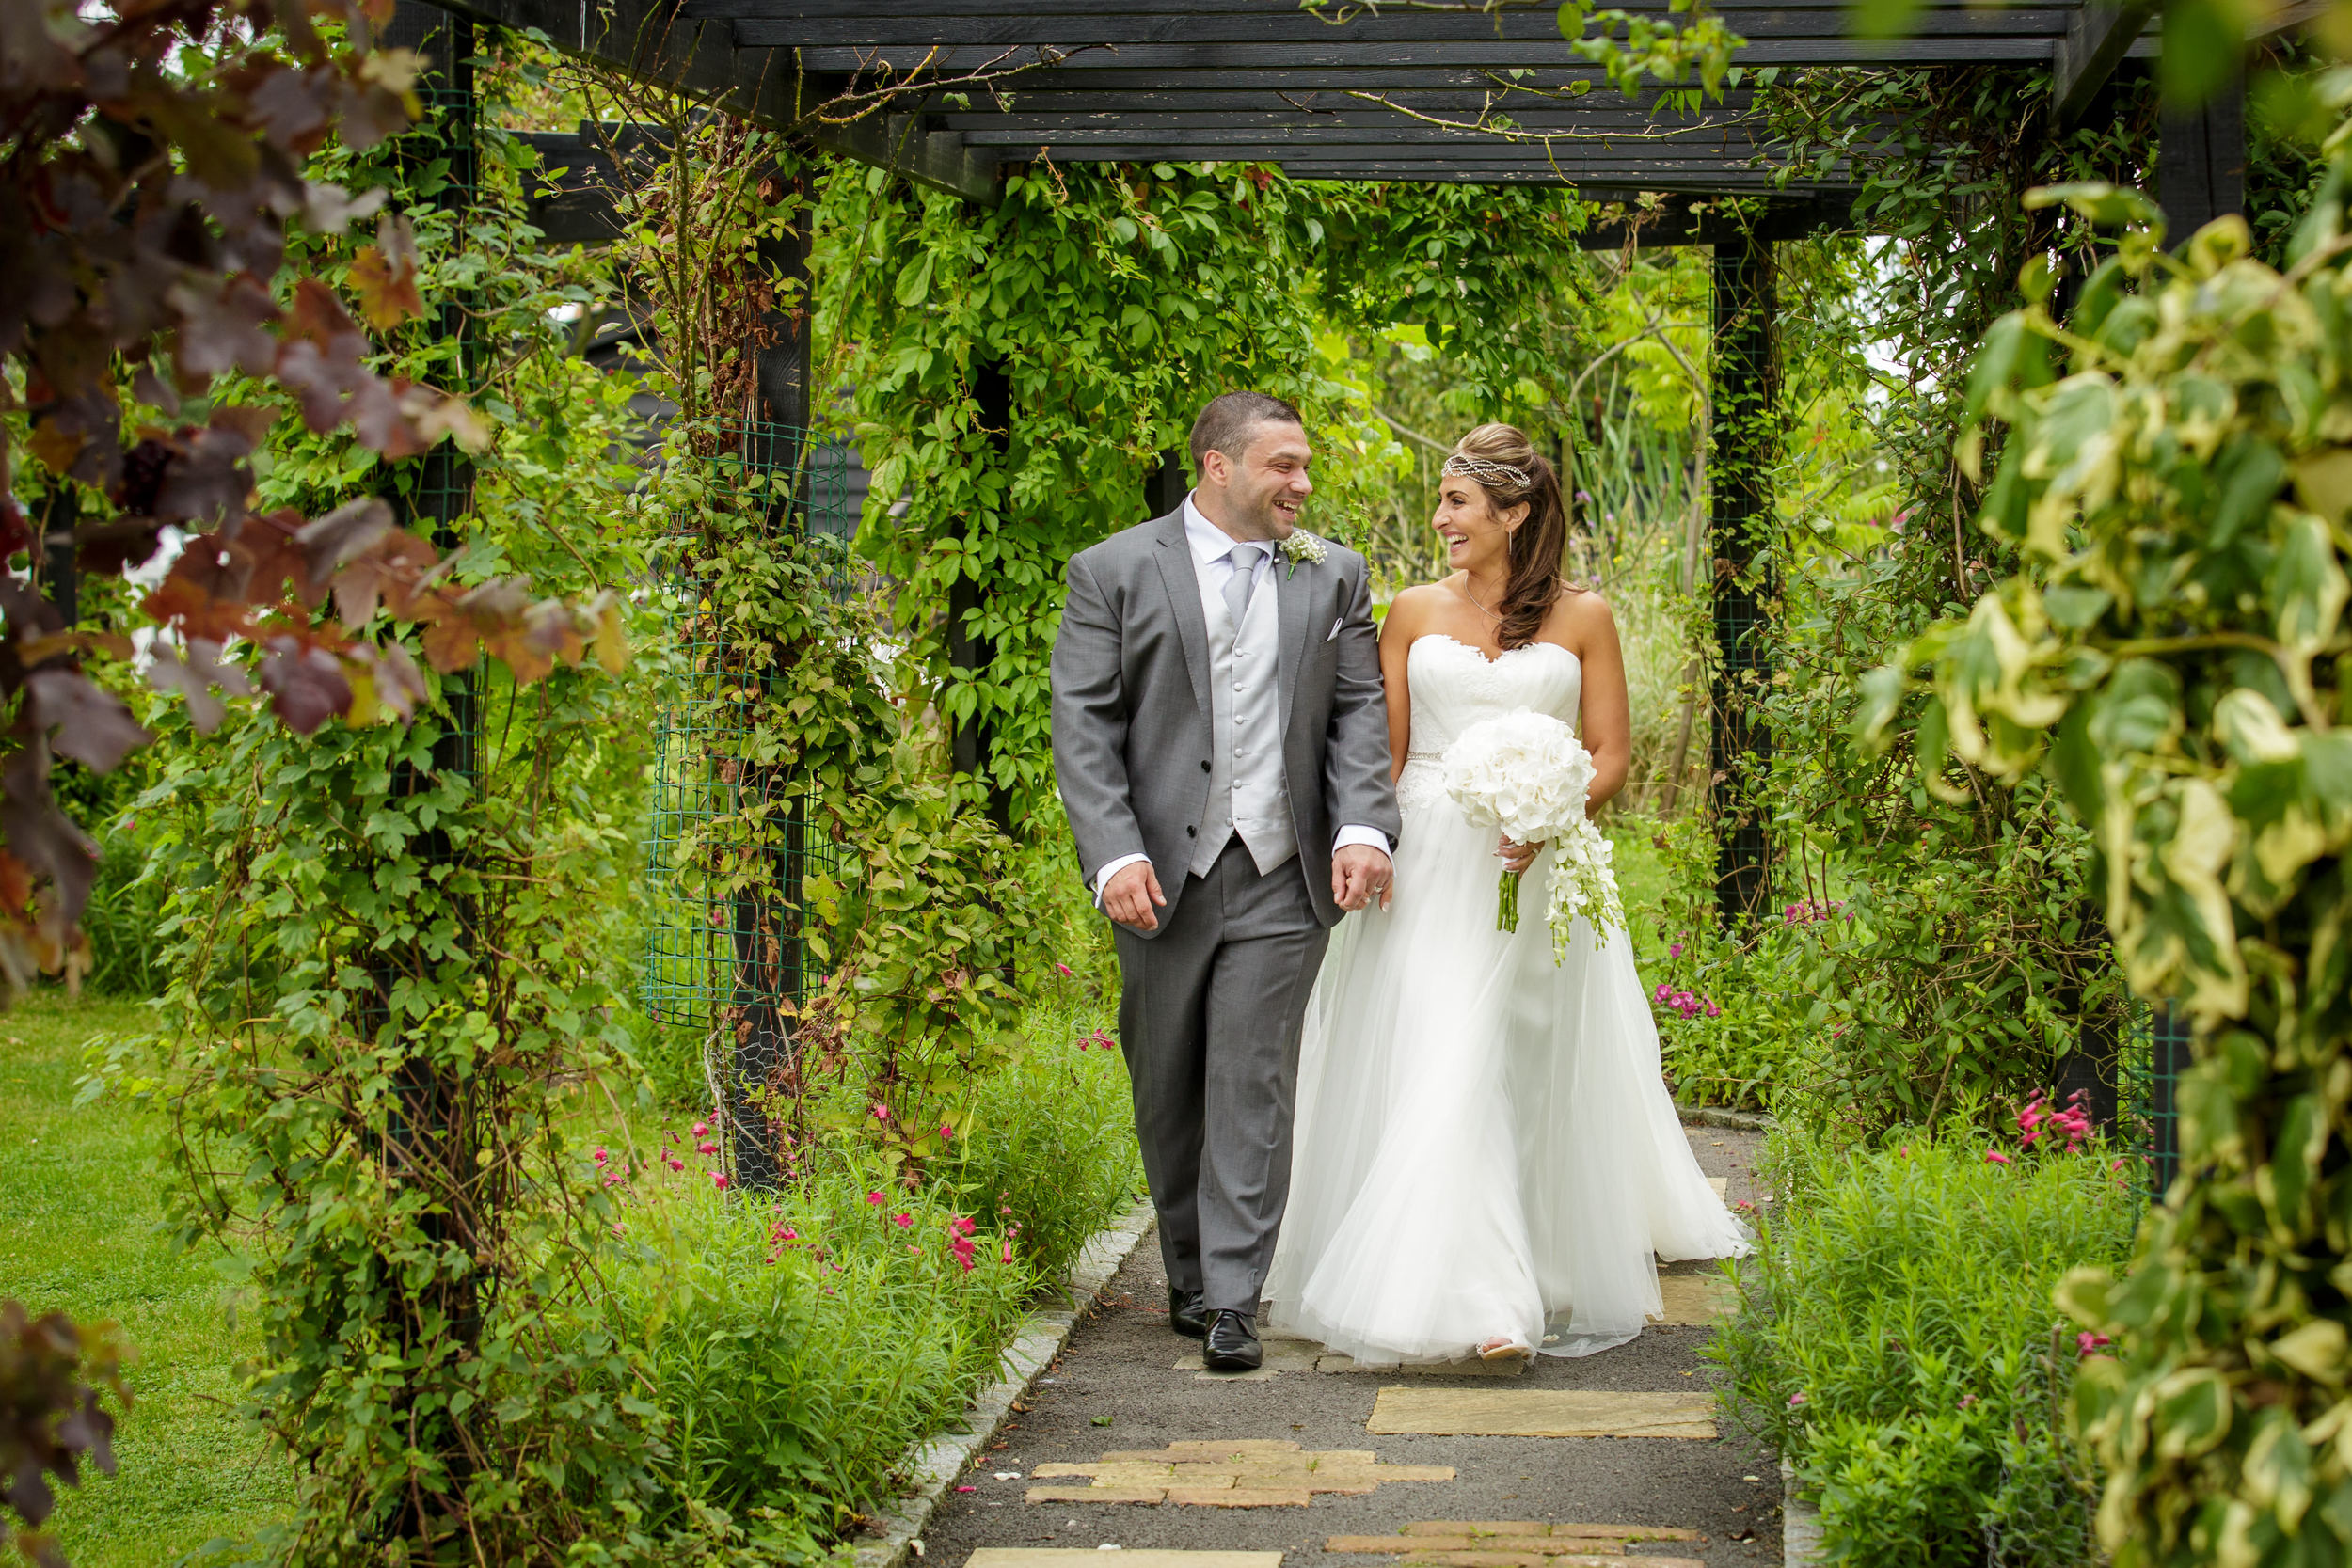 High House Weddings By Pure Image Photography0110.jpg